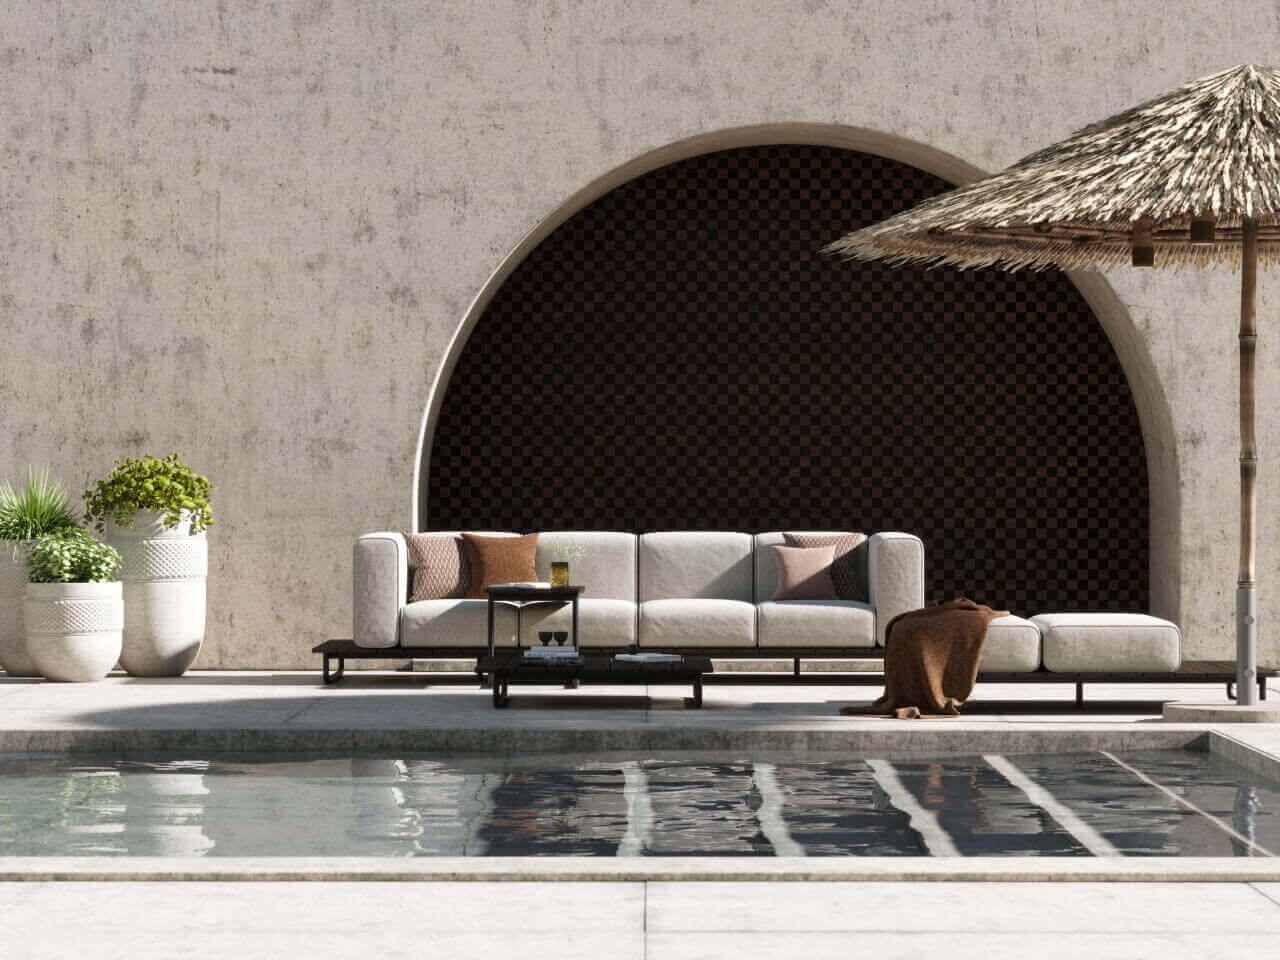 outdoor-collection-domkapa-summer-interior-design-trends-copacabana-1